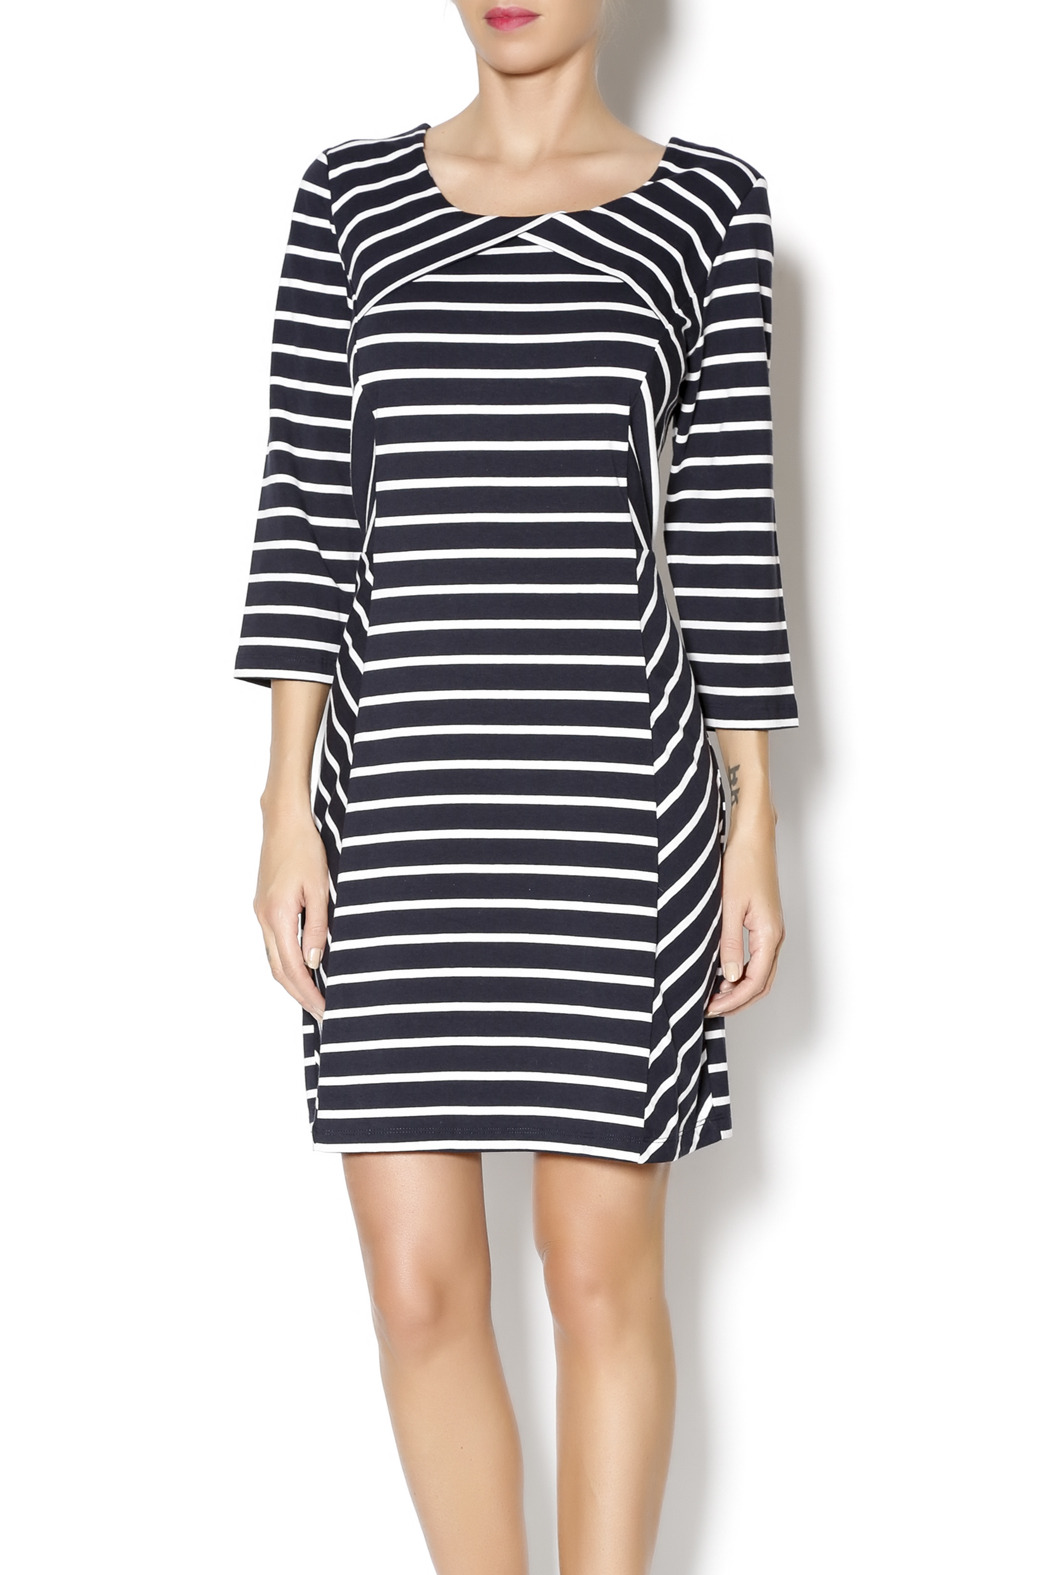 Yest Navy Stripes Dress - Front Cropped Image